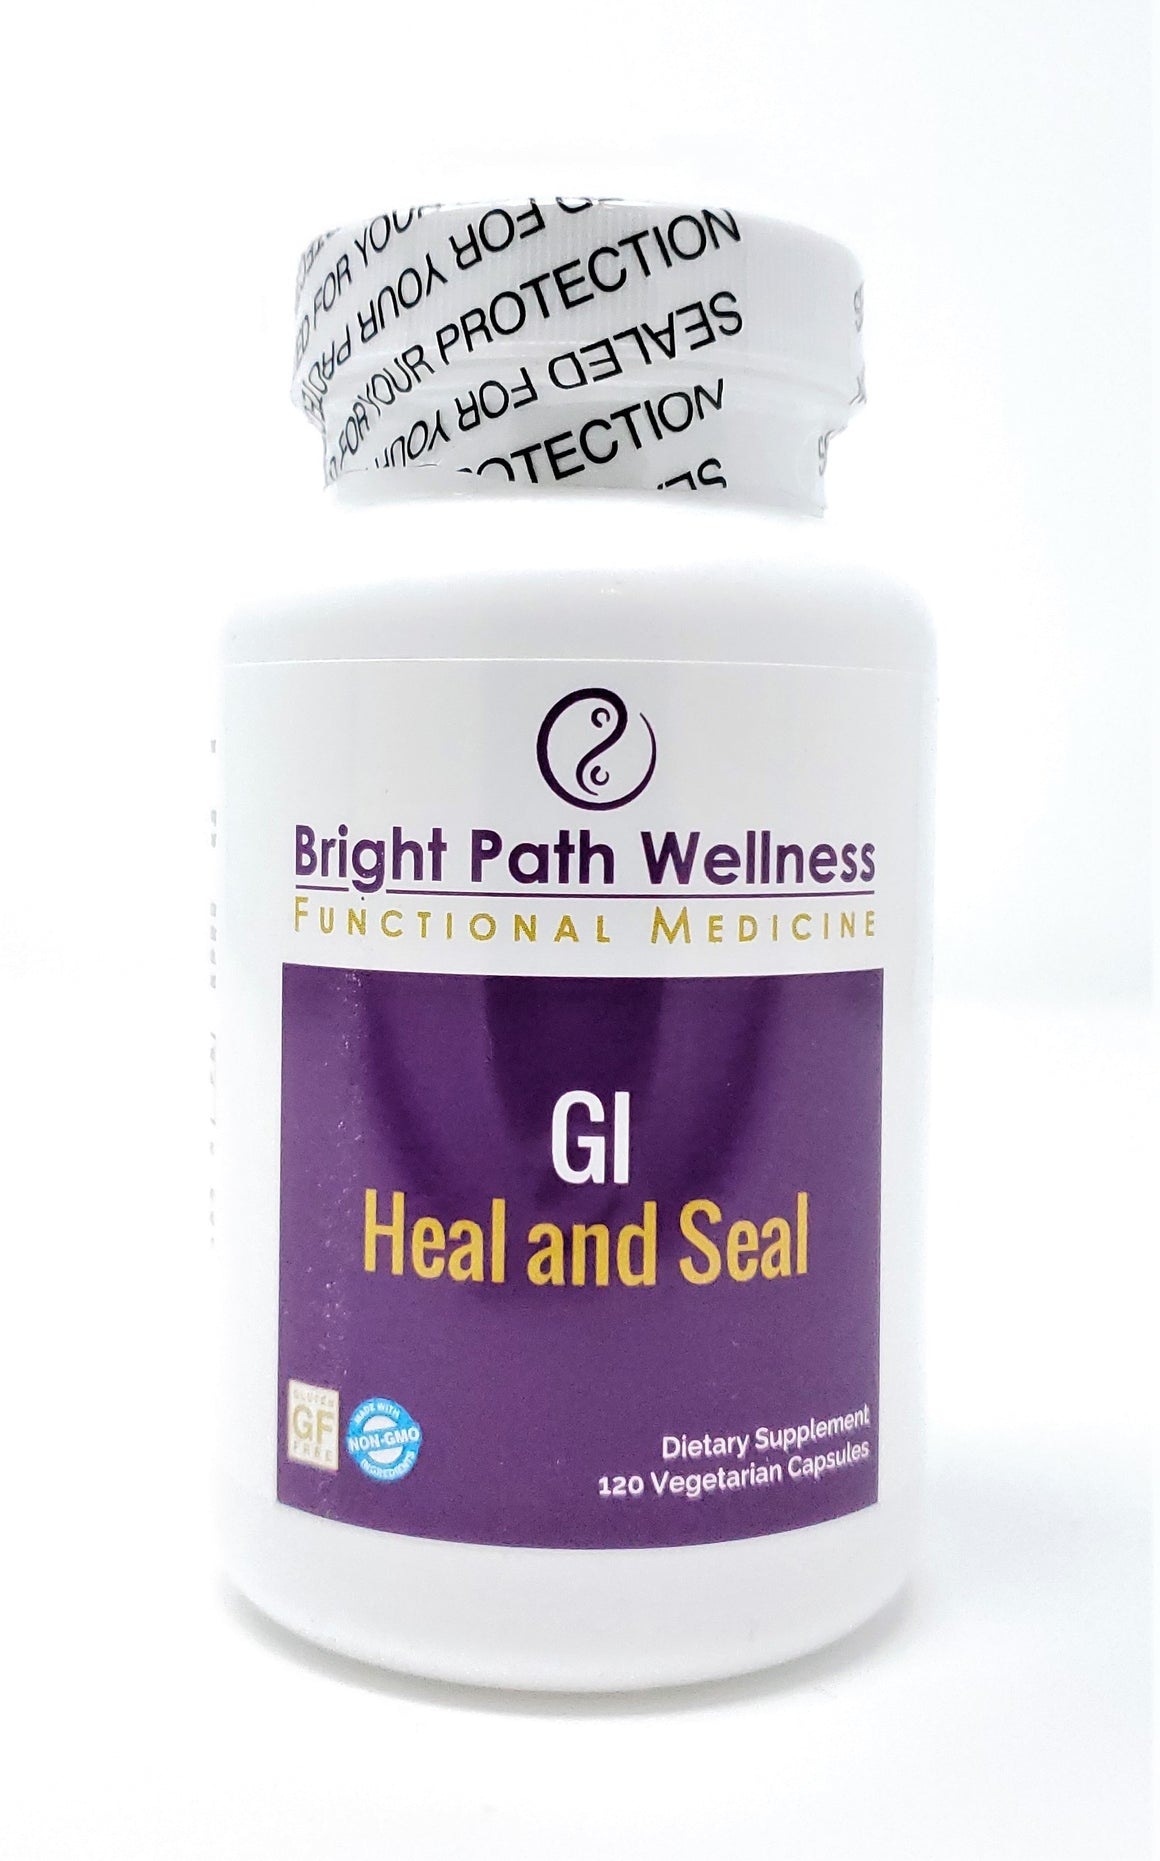 GI Heal and Seal - 120 Caps - Pantothenic Acid, Zinc, Inulin, L-Glutamine, Aloe Vera 200:1 Aqueous Extract